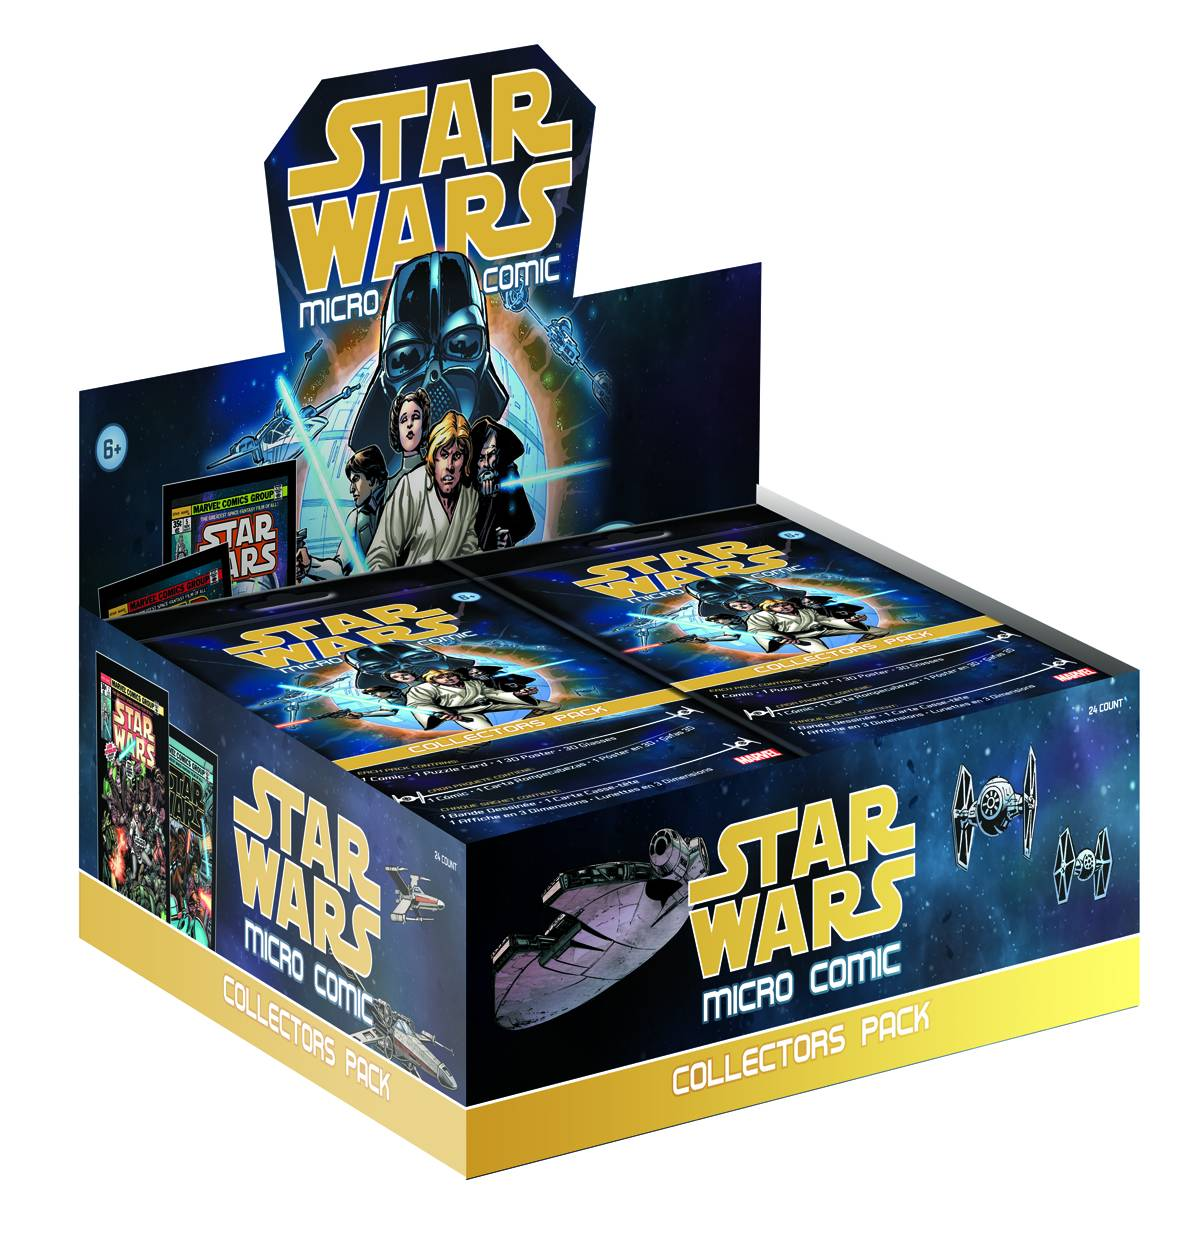 STAR WARS MICRO COMIC COLLECTORS PACK DSP (Net)